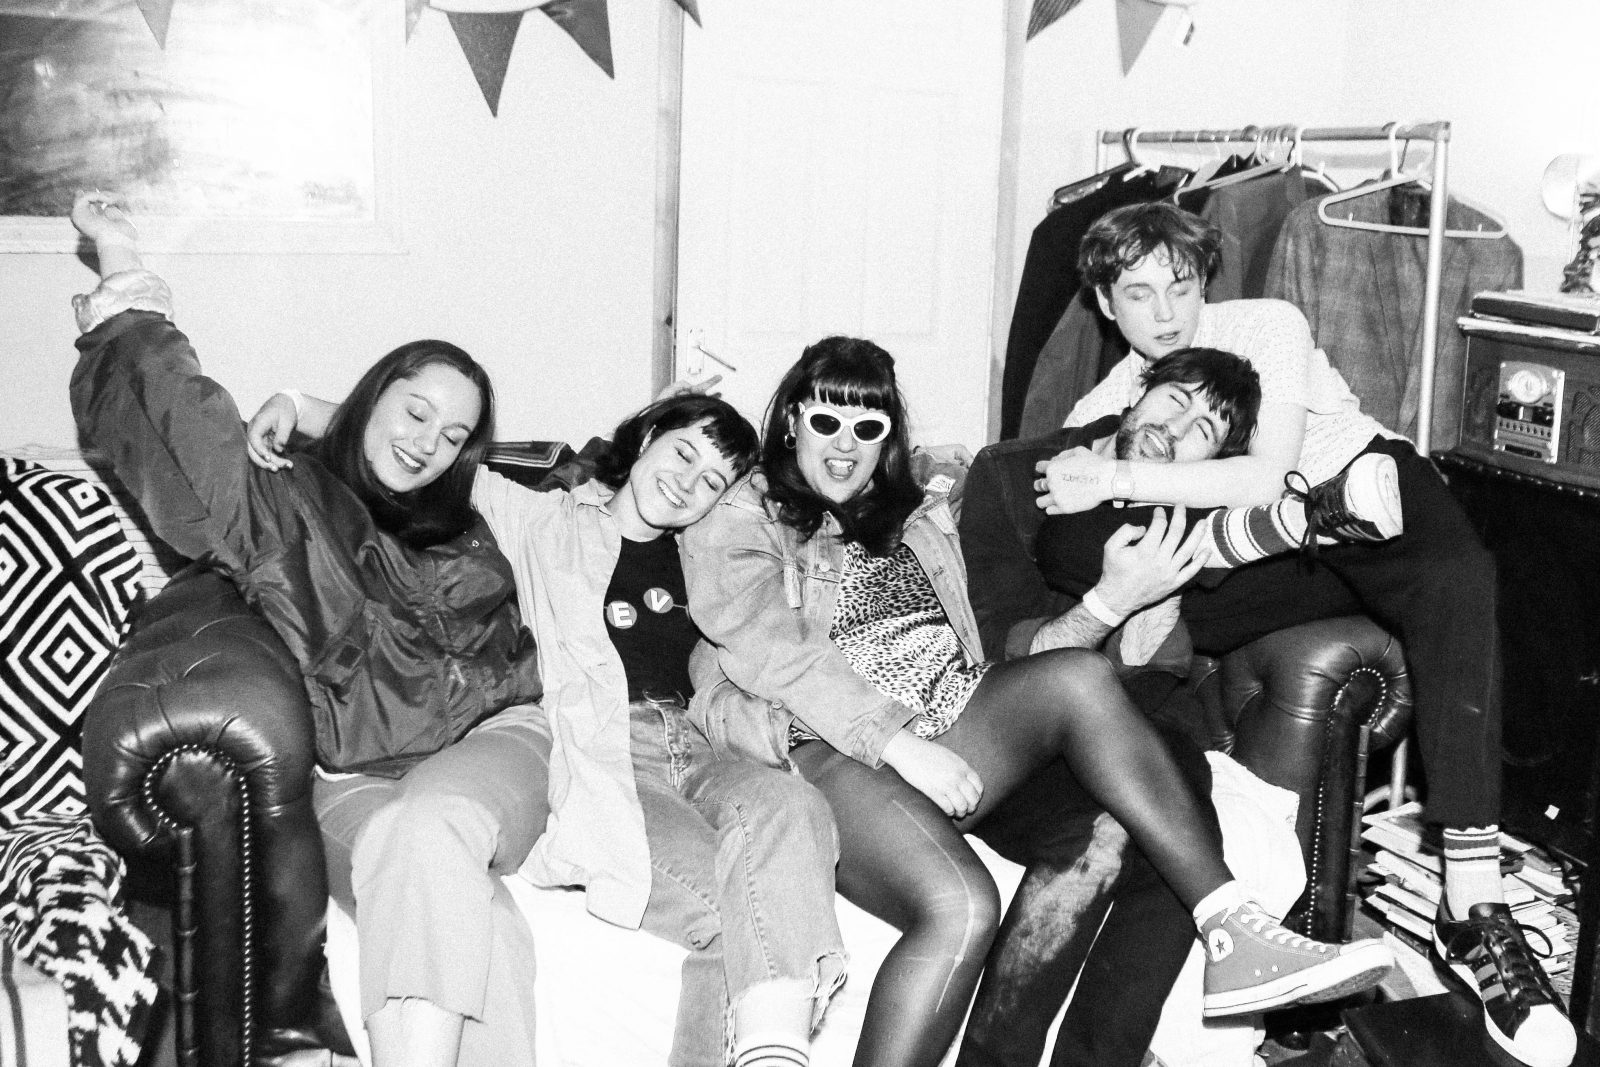 The Orielles ditched school to take us across the UK